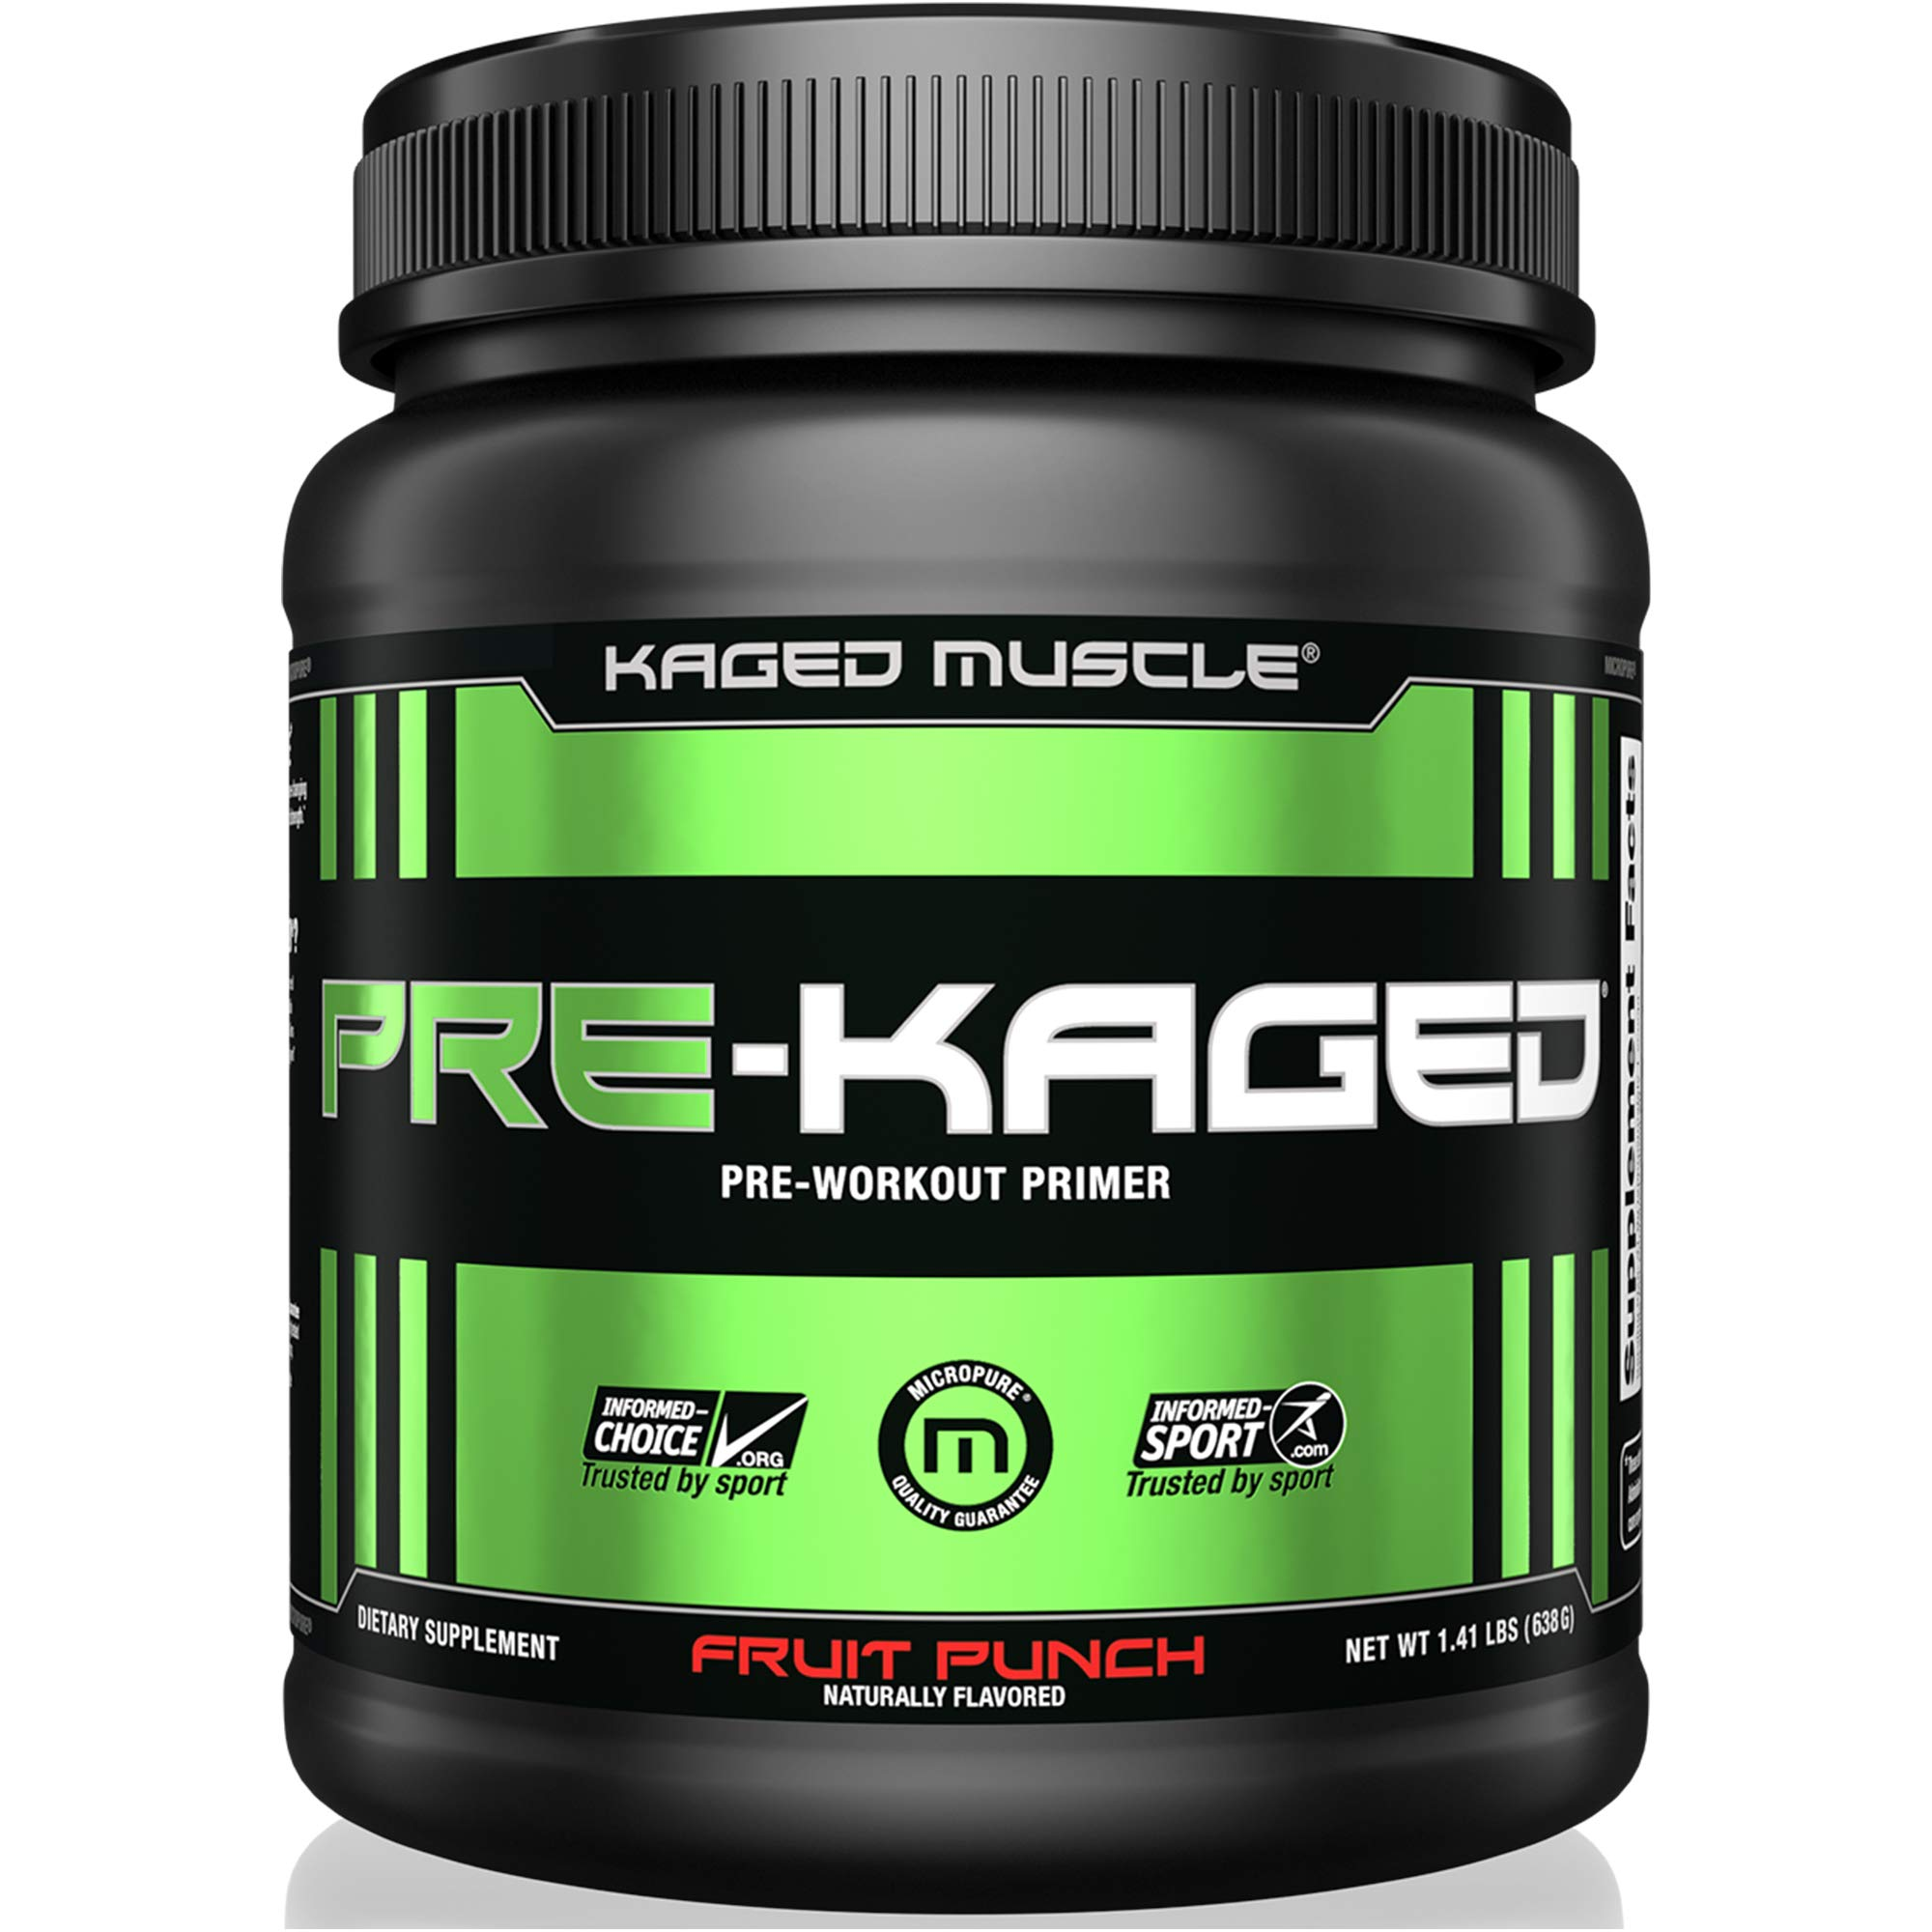 KAGED MUSCLE, PRE-KAGED Pre Workout Powder, Fruit Punch, L-Citrulline + Creatine HCl, Boost Energy, Focus, Workout Intensity, Pre-Workout, Fruit Punch, 638 Grams by Kaged Muscle